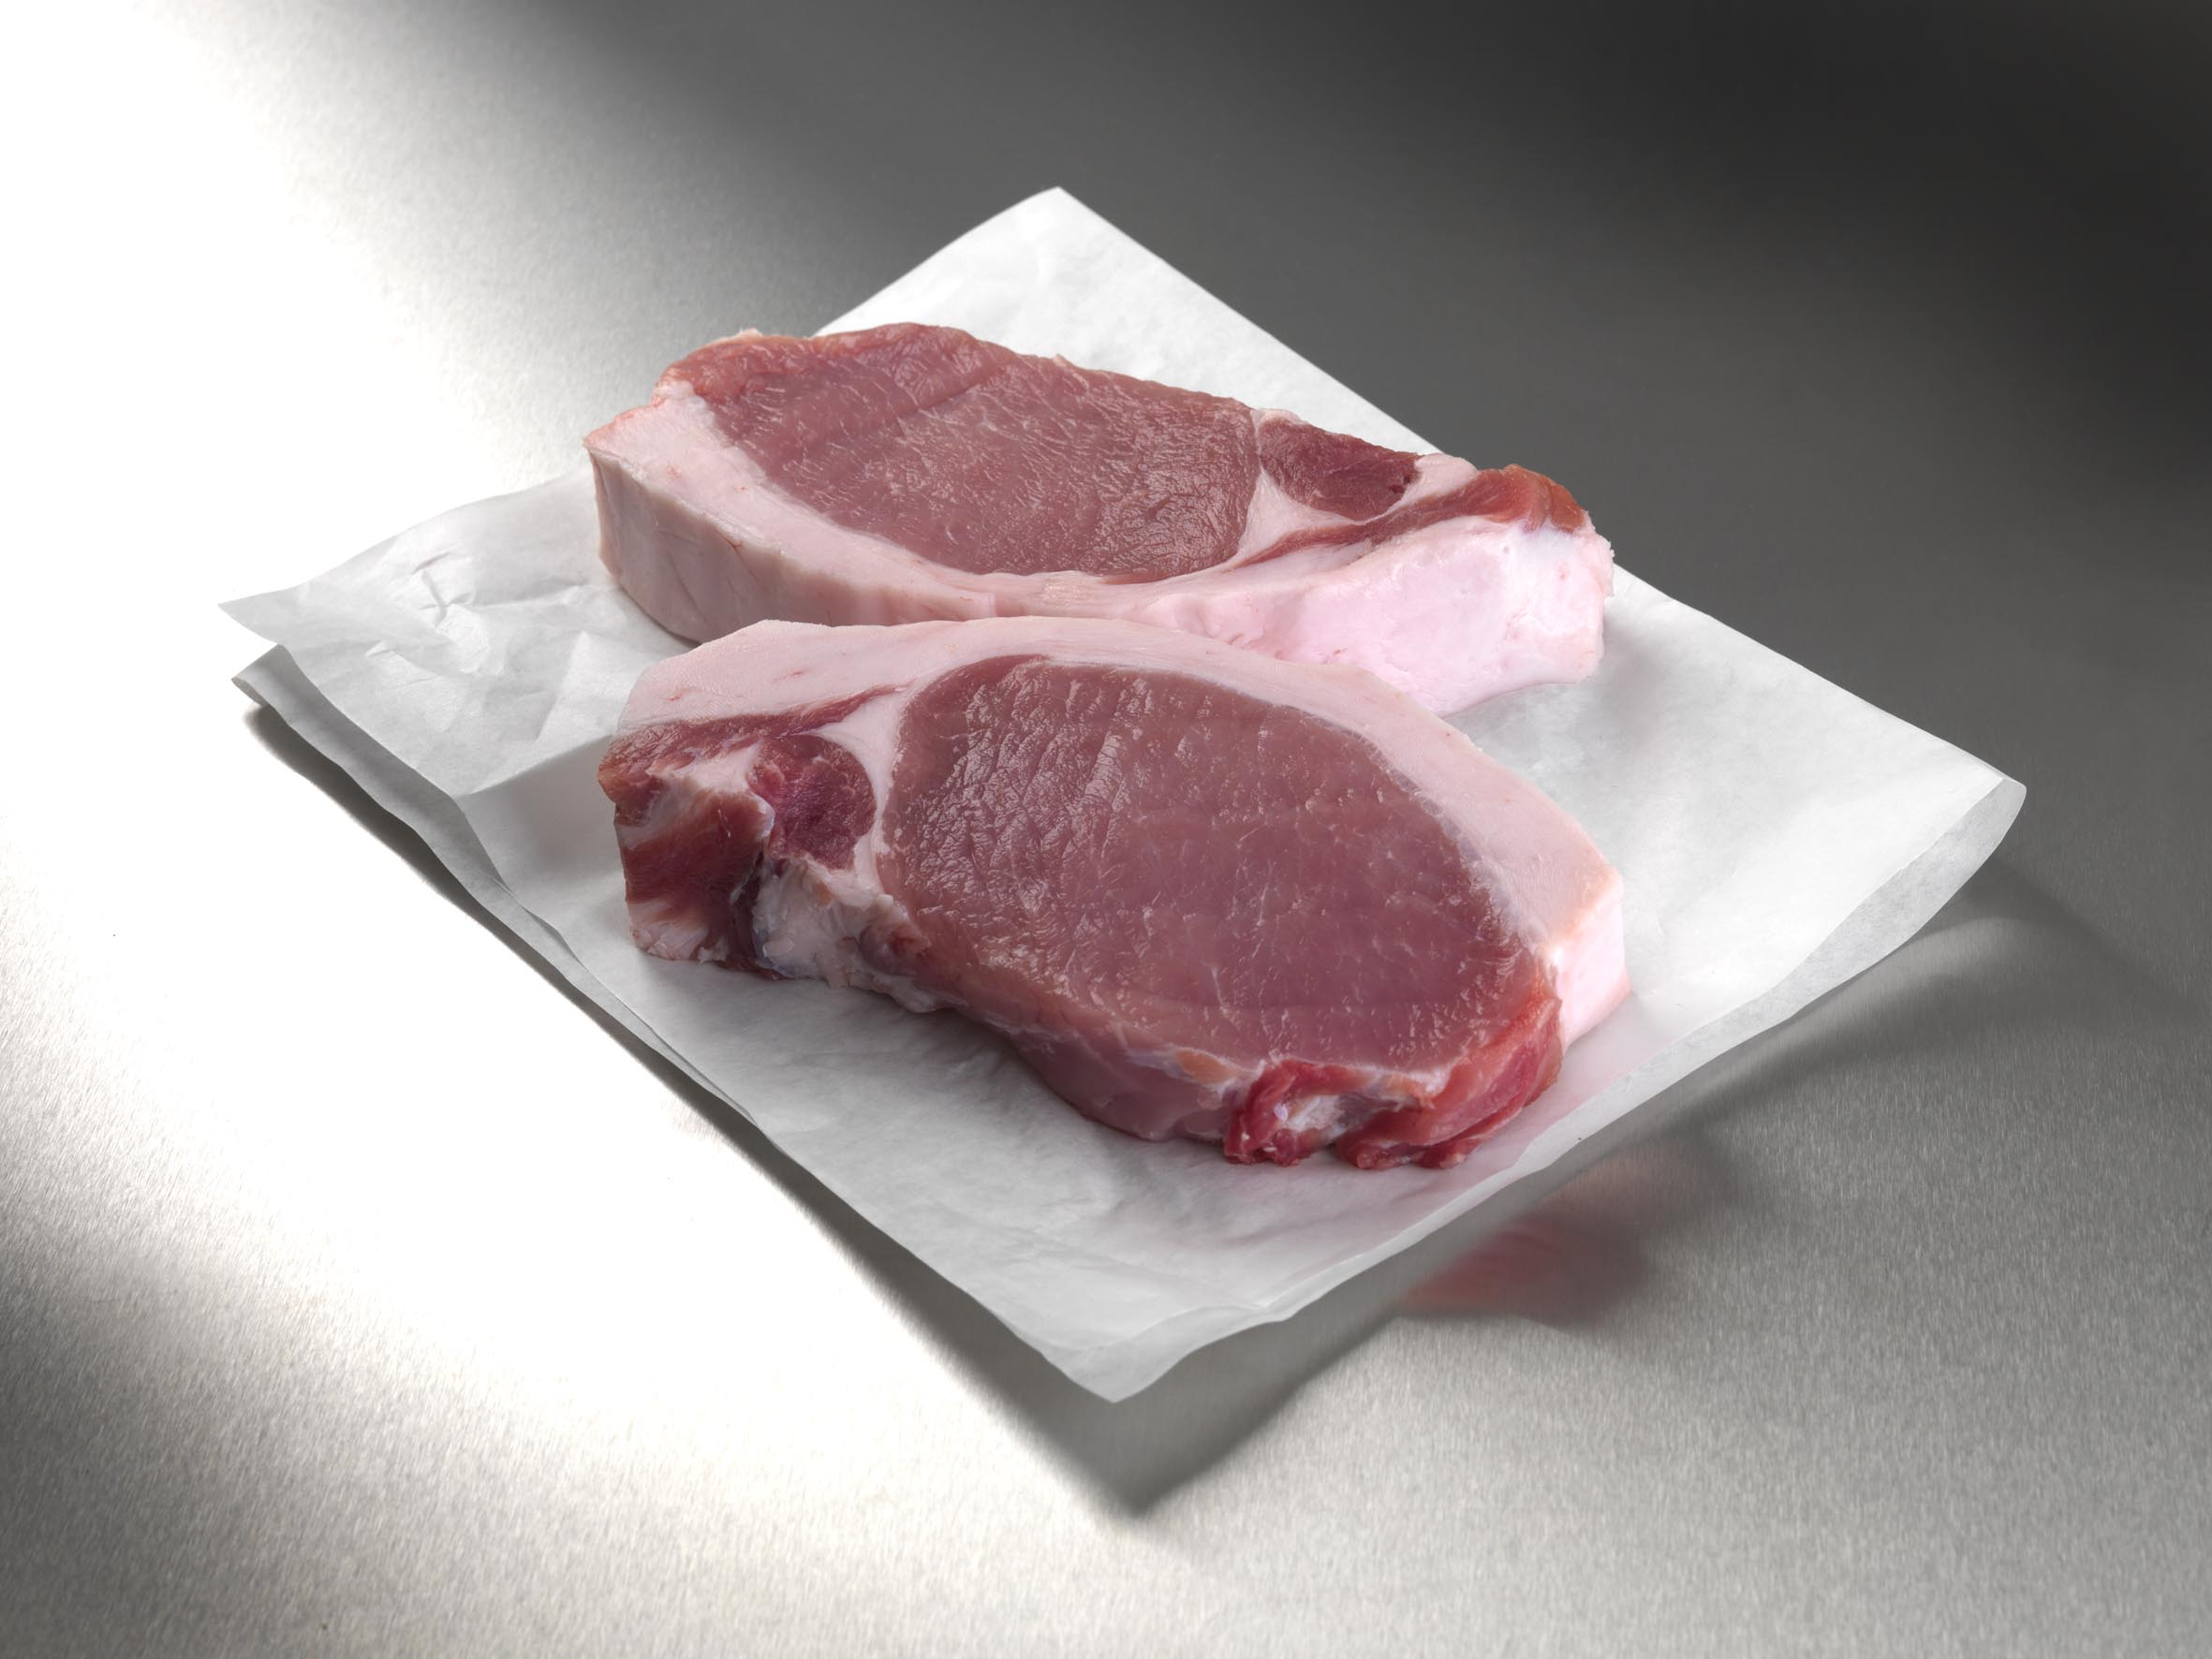 How To Cook Pork Loin Steaks